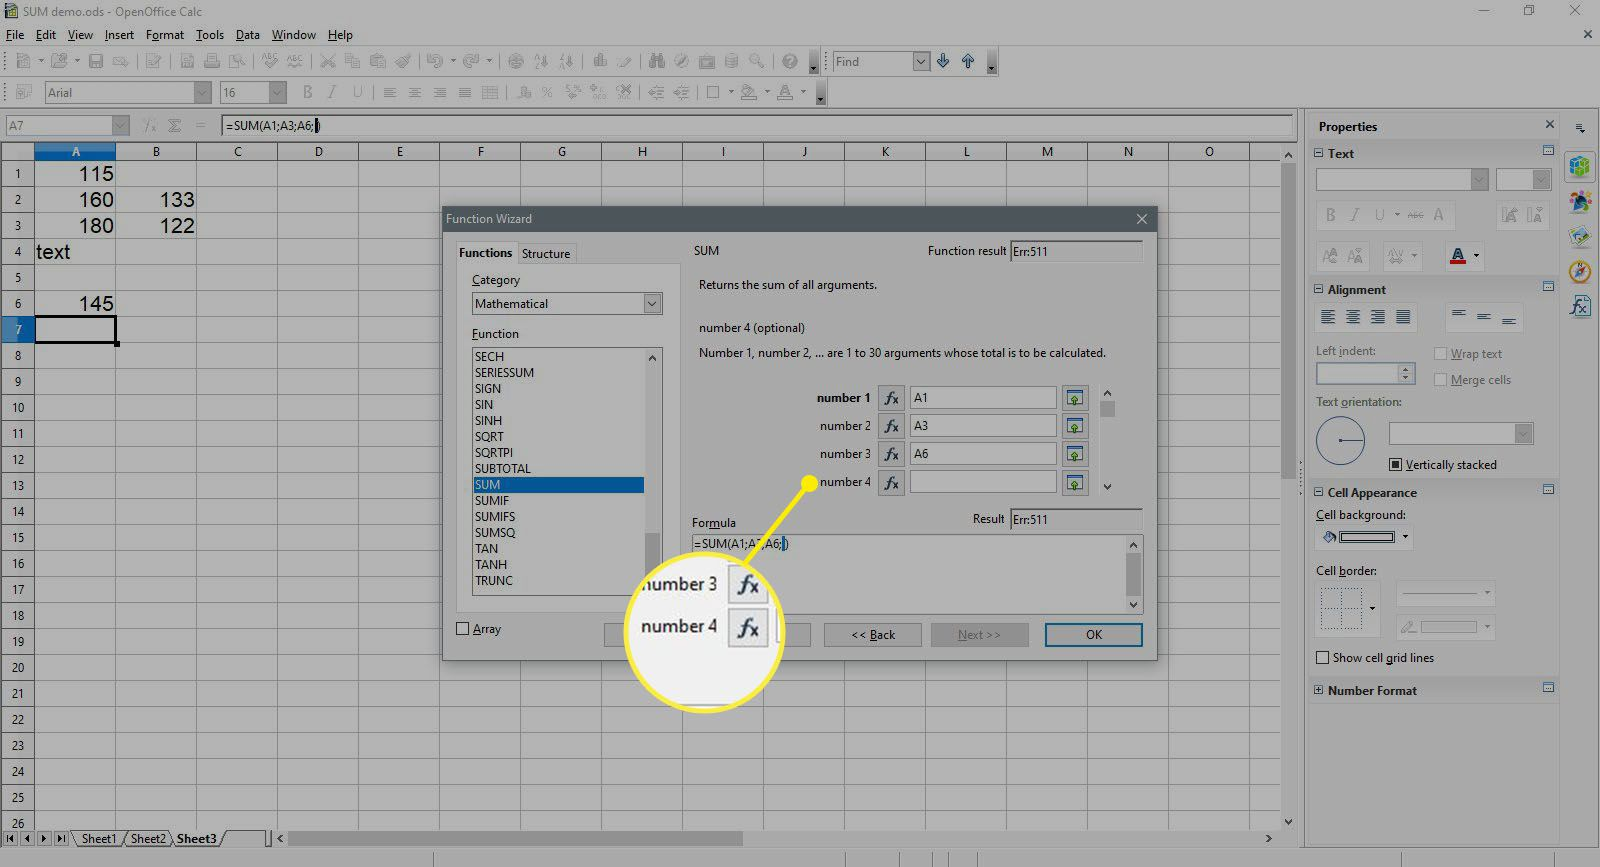 Selecting number 4 cell in OpenOffice Calc.